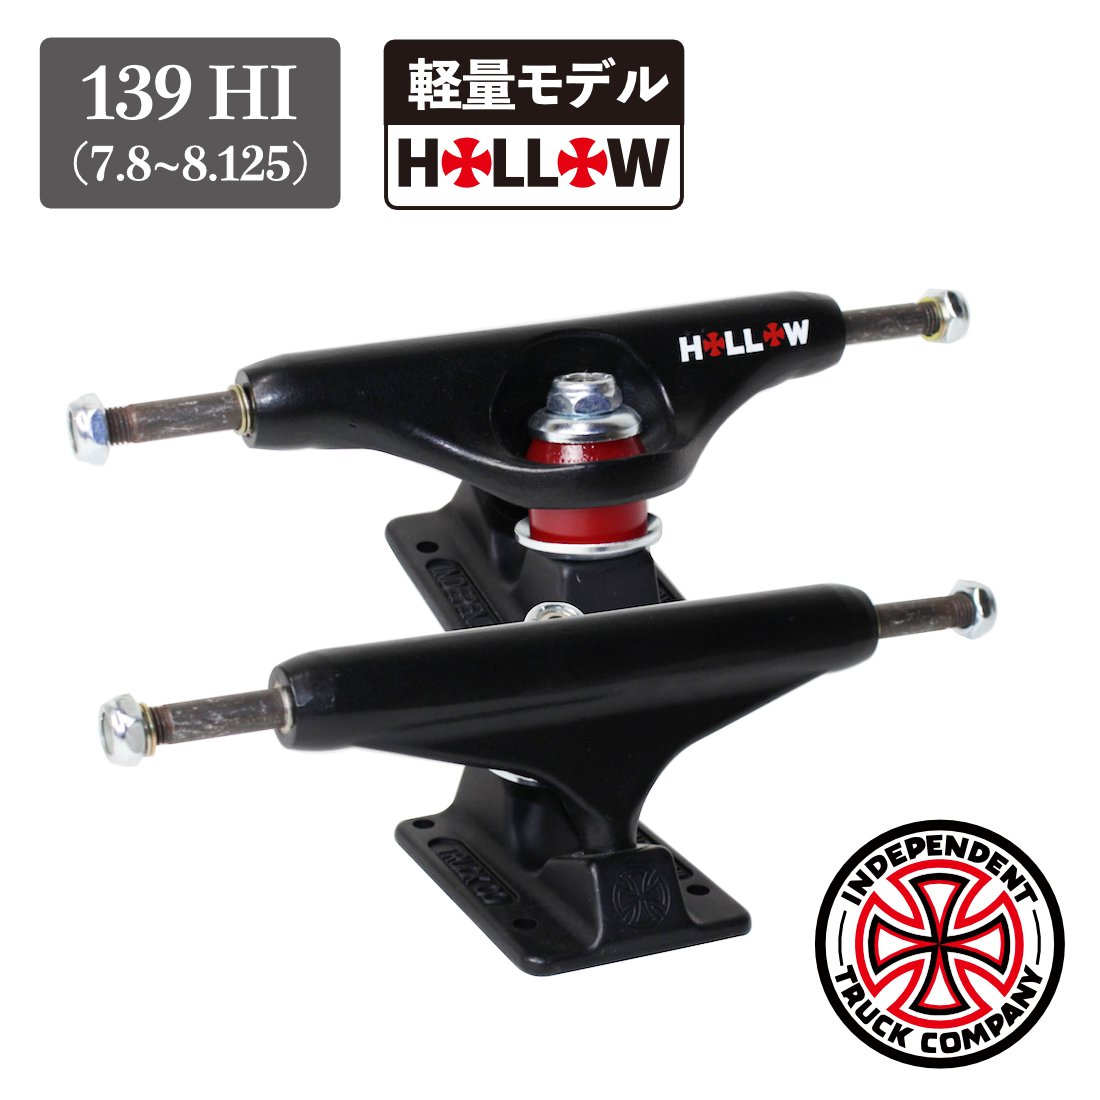 【INDEPENDENT】 Forged Hollow Standard -139